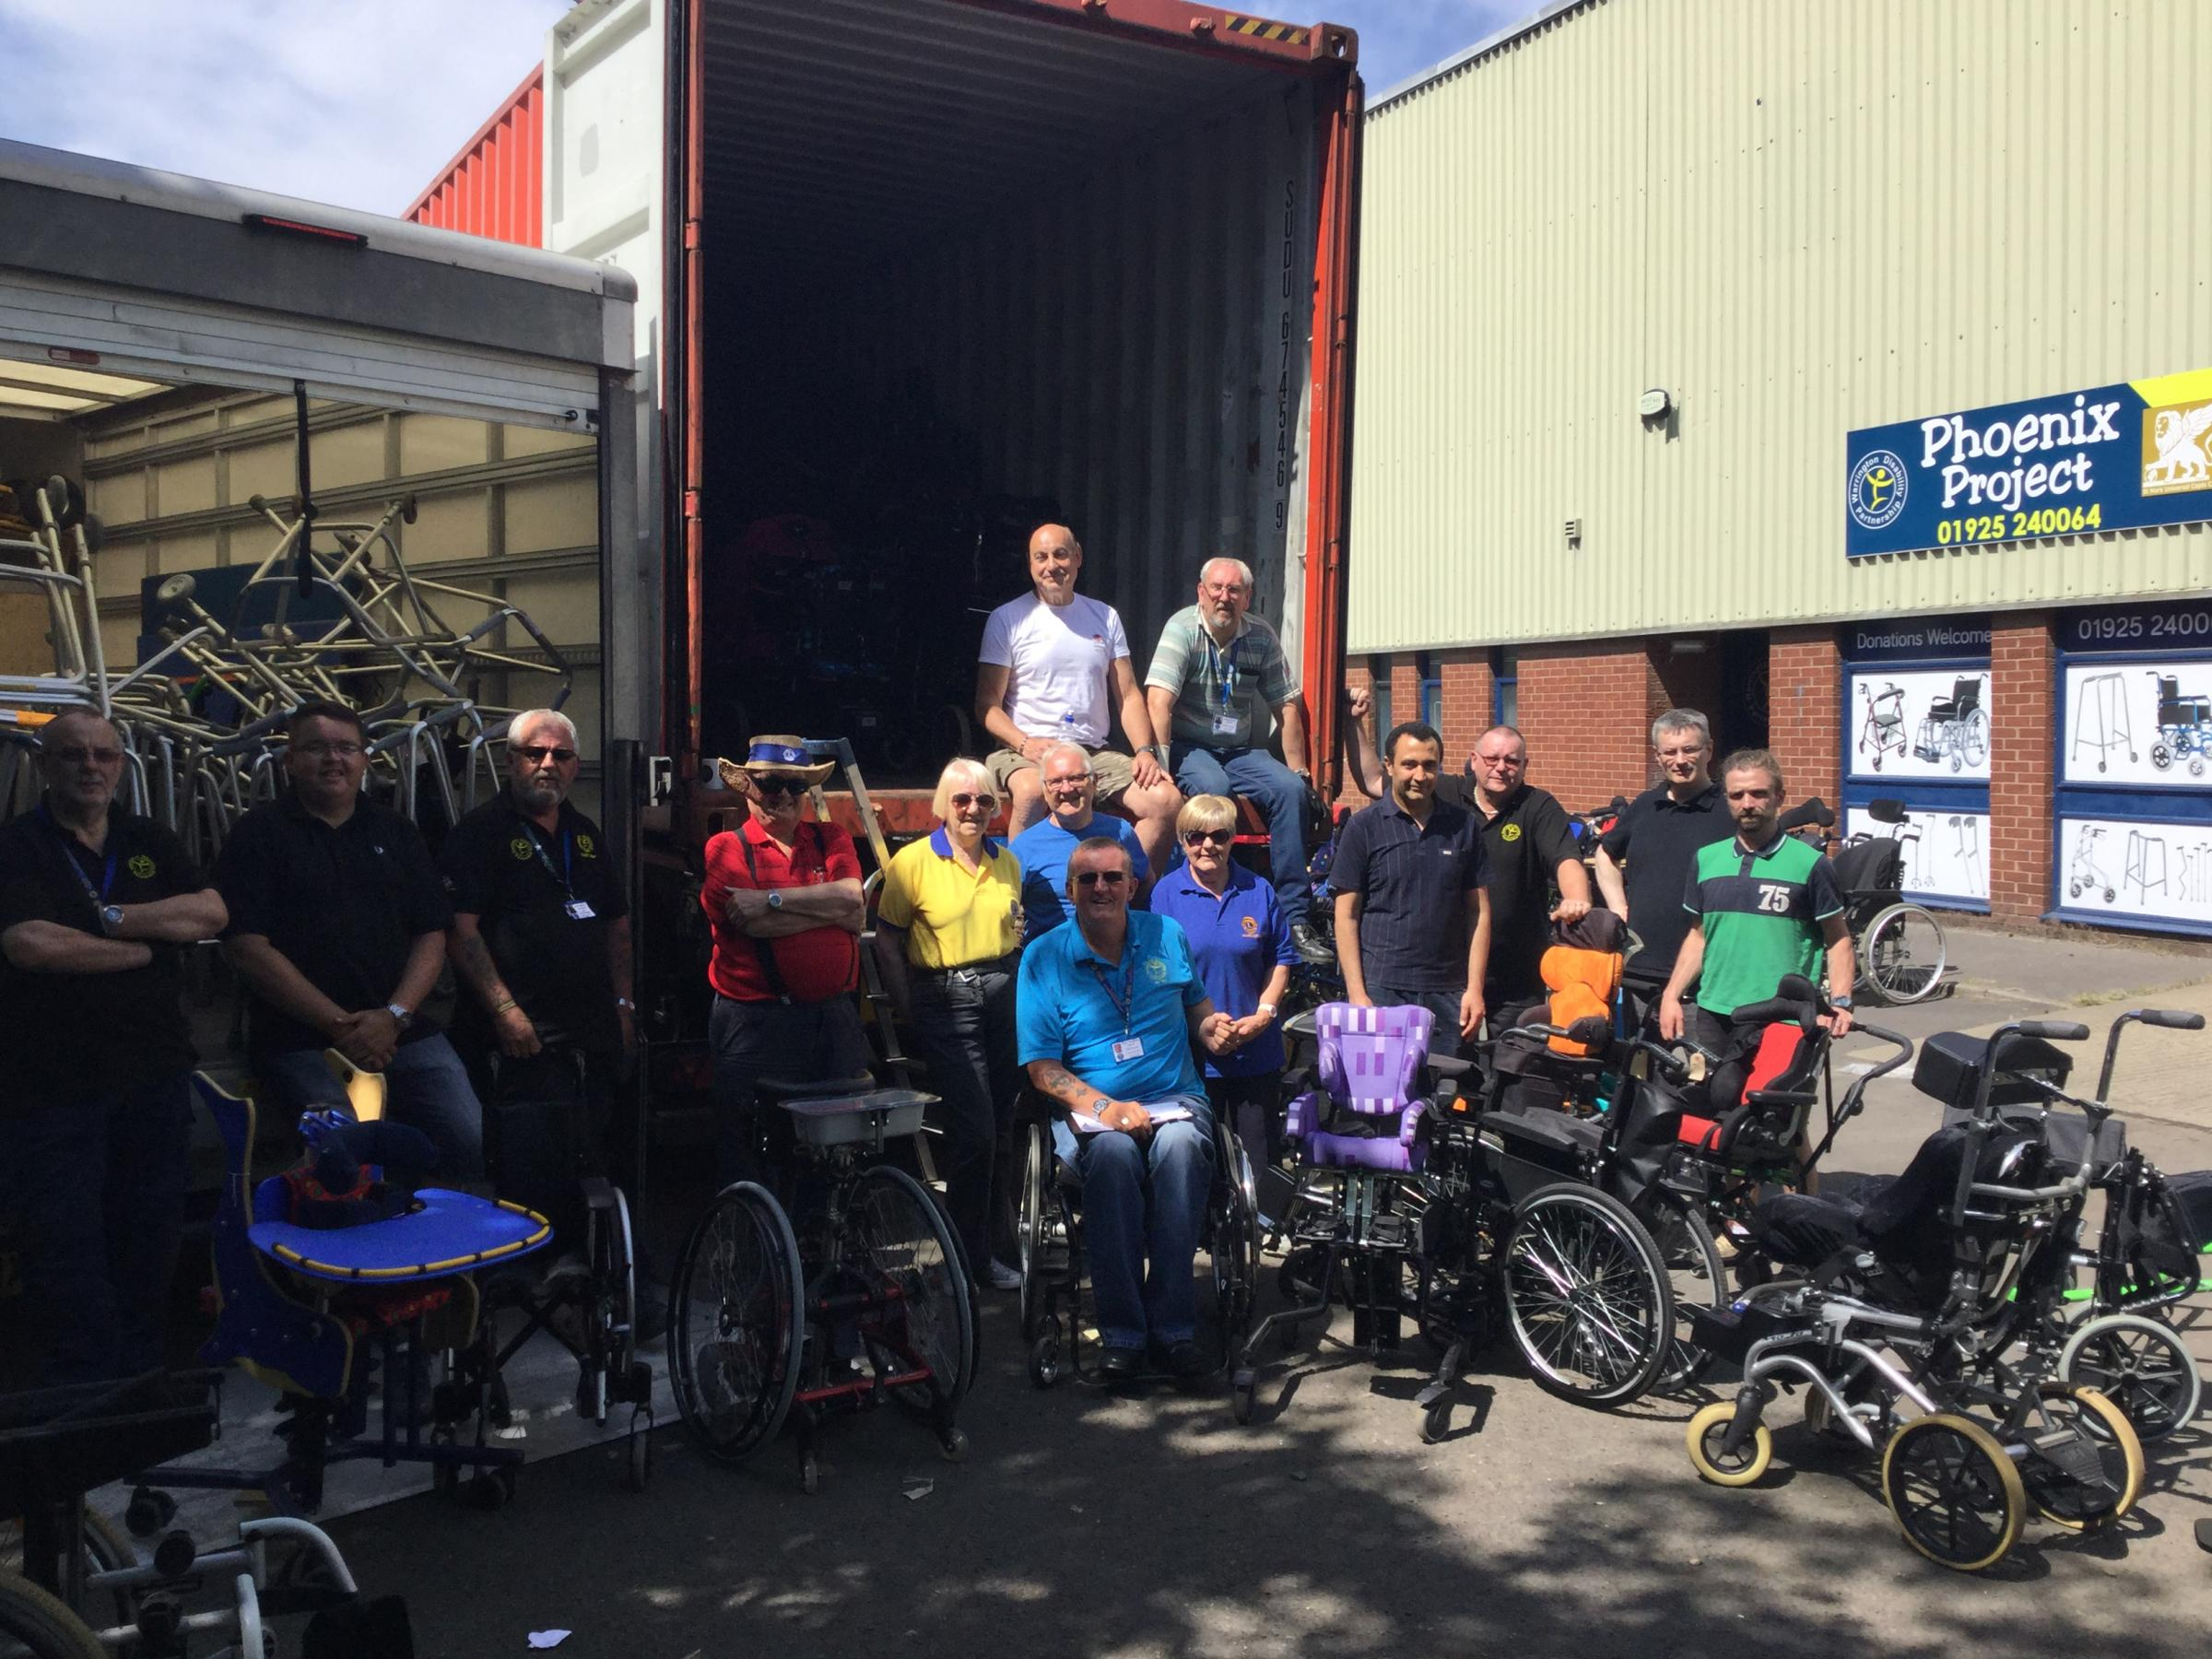 Warrington Disability Partnership's Phoenix Project has sent £350,000 worth of mobility equipment to the 57357 Hospital in Cairo.